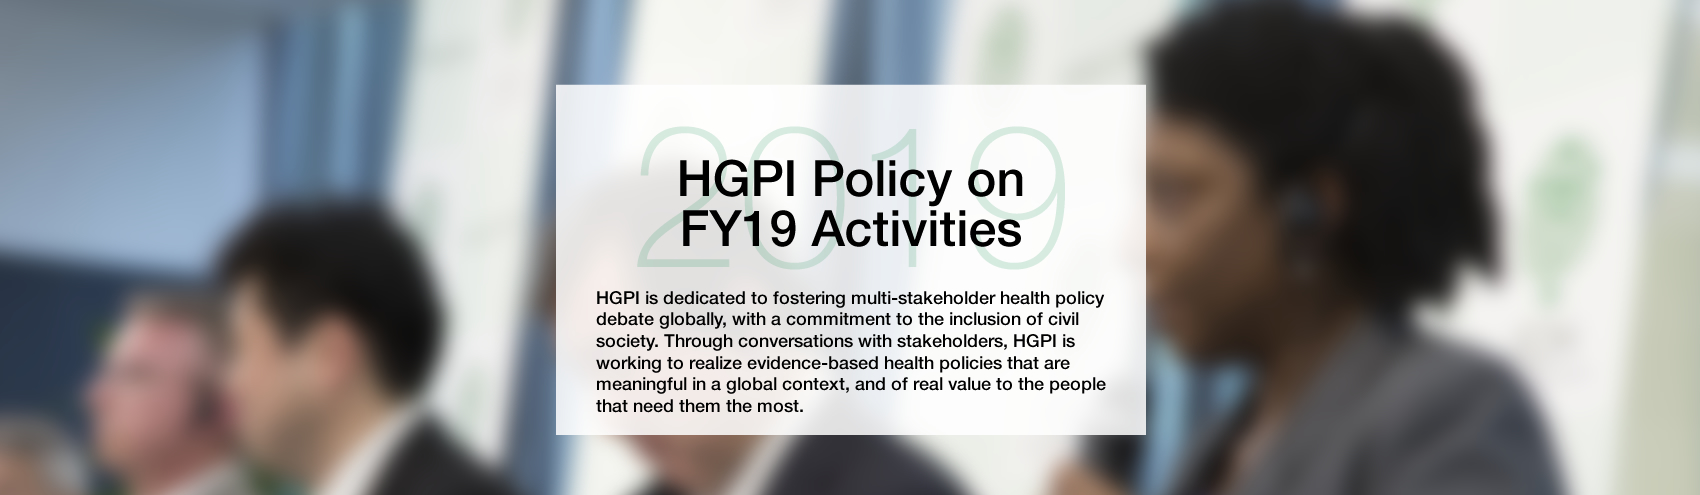 HGPI Policy on FY19 Activities